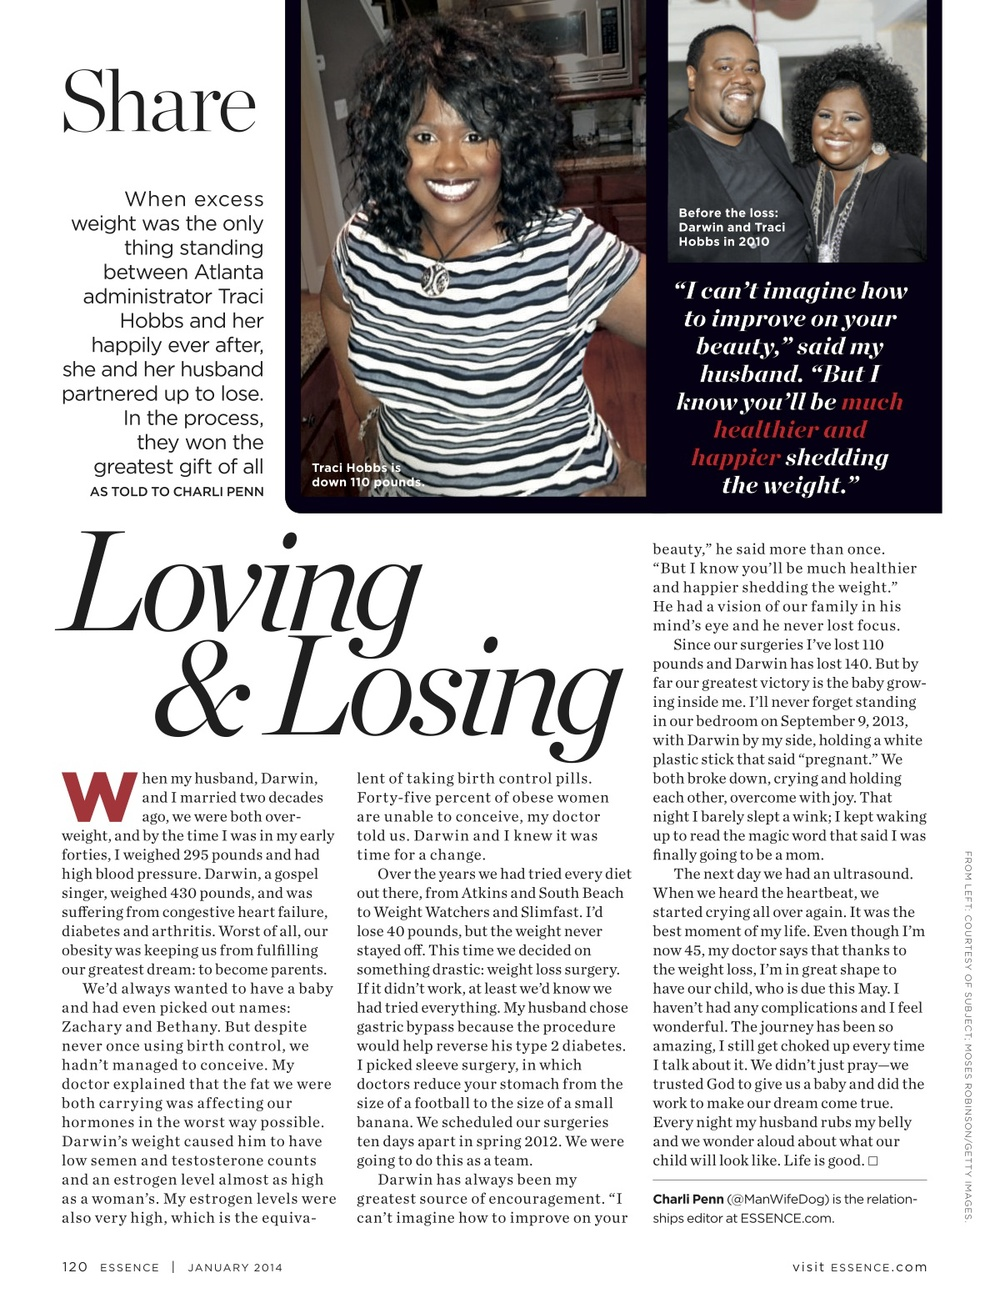 Loving & Losing, ESSENCE Jan. 2014